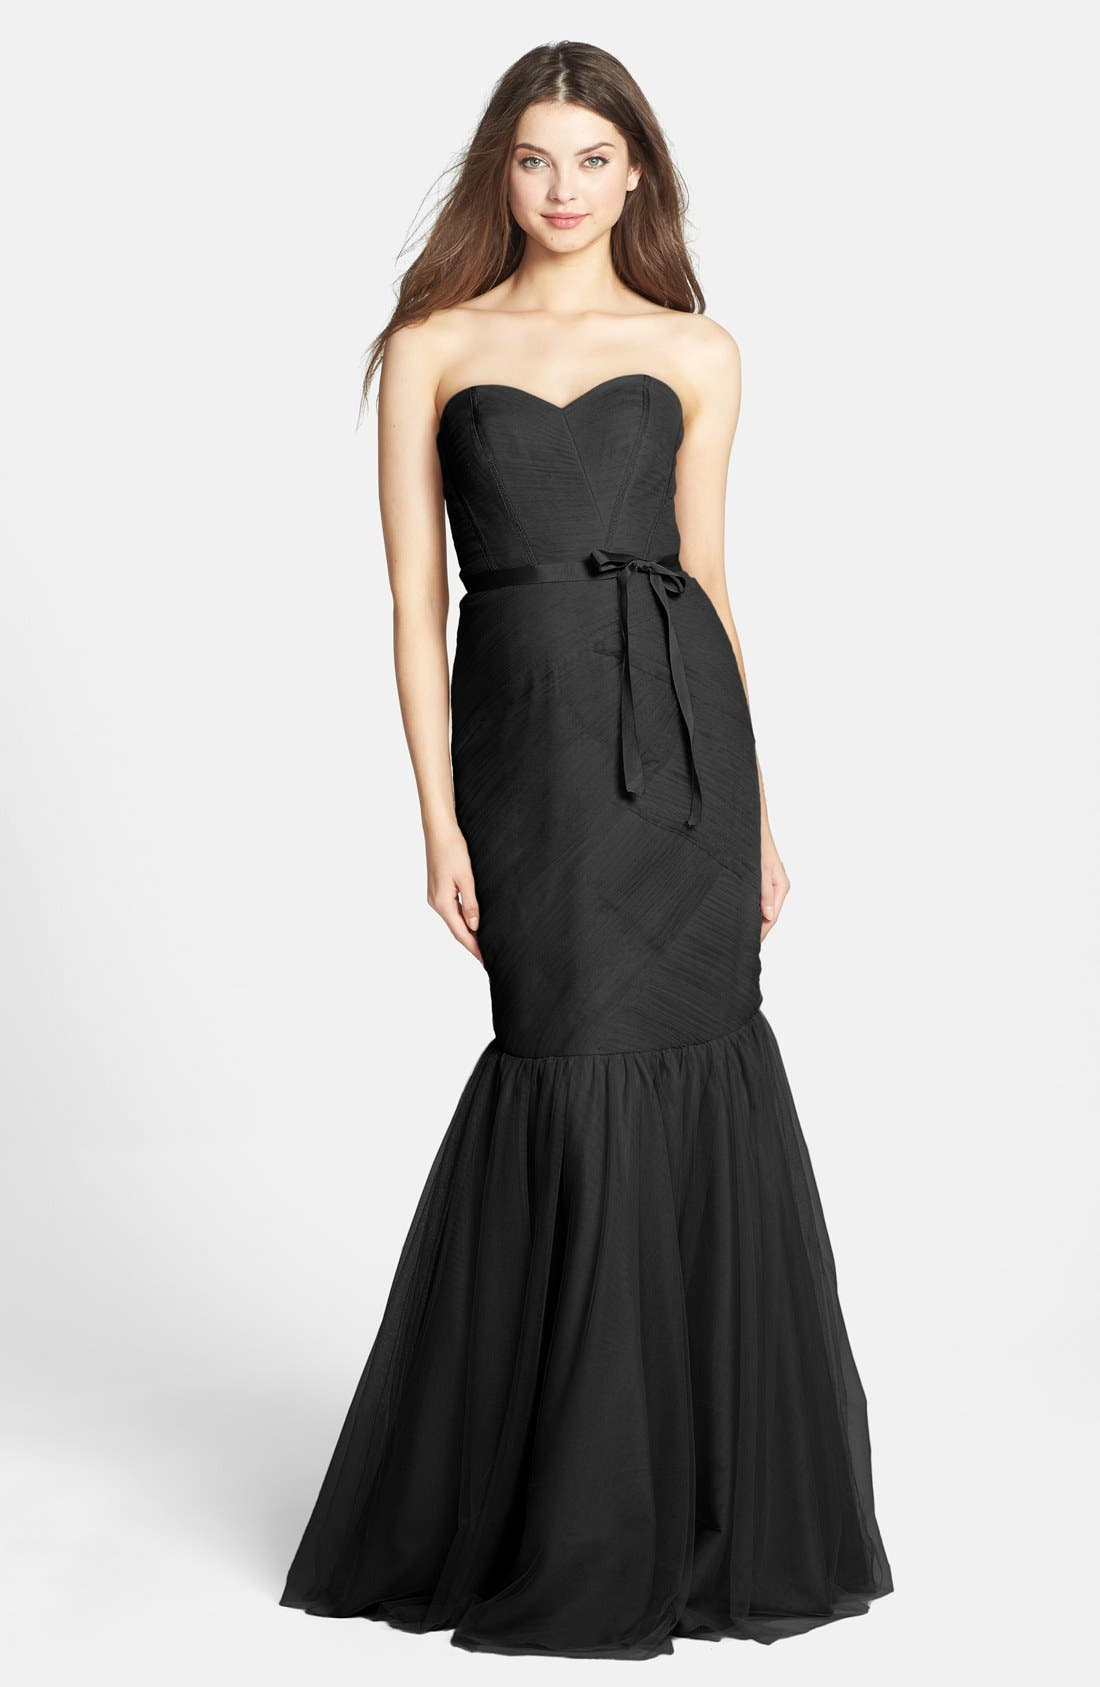 Main Image - Monique Lhuillier Bridesmaids Strapless Tulle Trumpet Dress